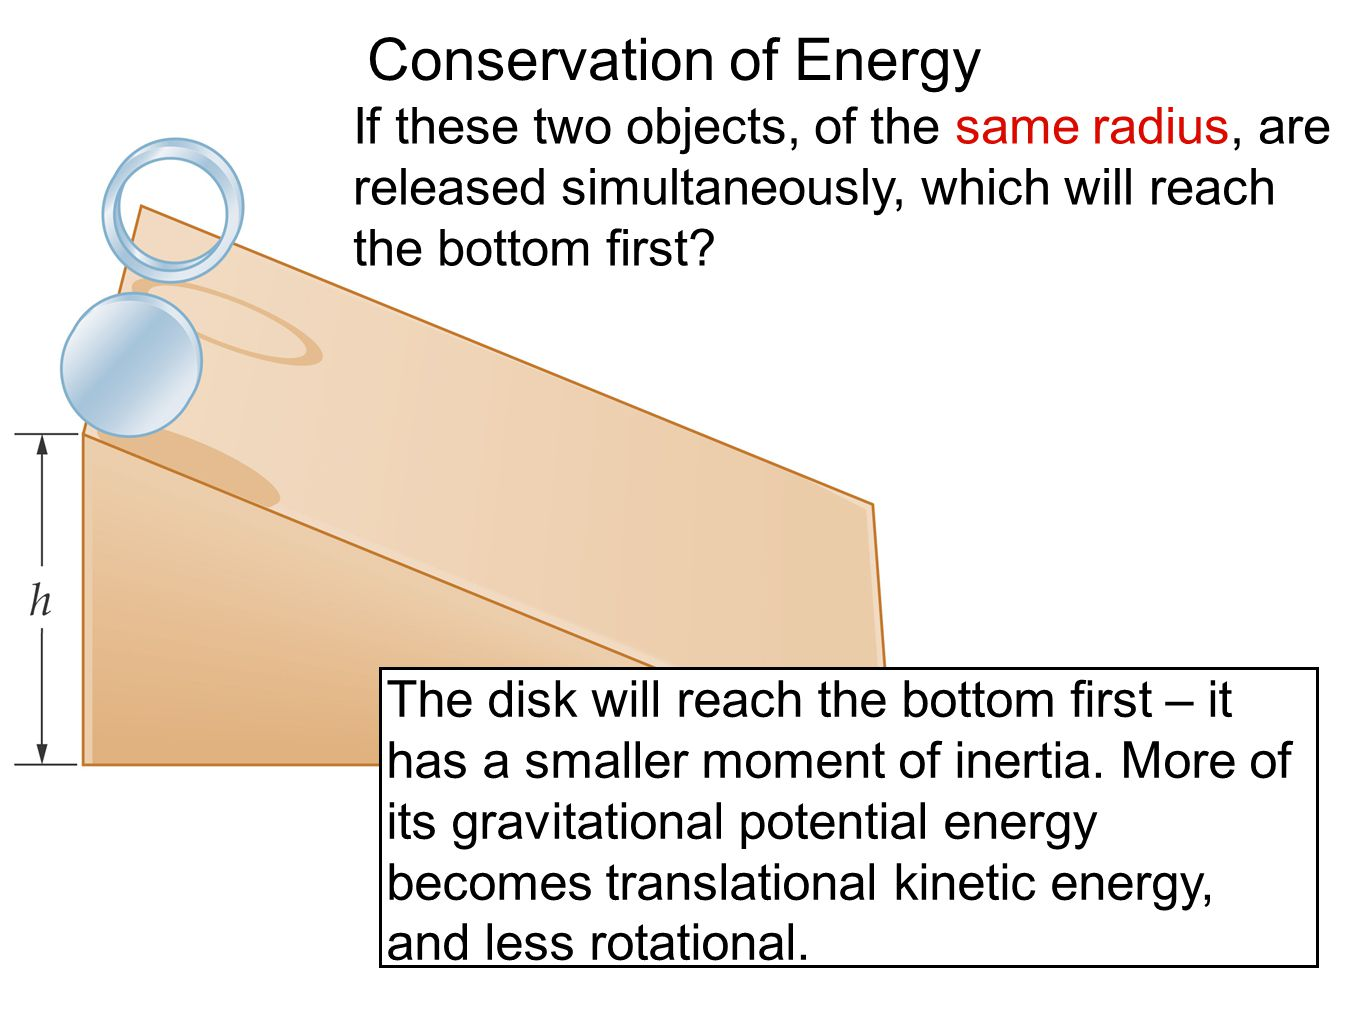 Conservation of Energy If these two objects, of the same radius, are released simultaneously, which will reach the bottom first? The disk will reach t